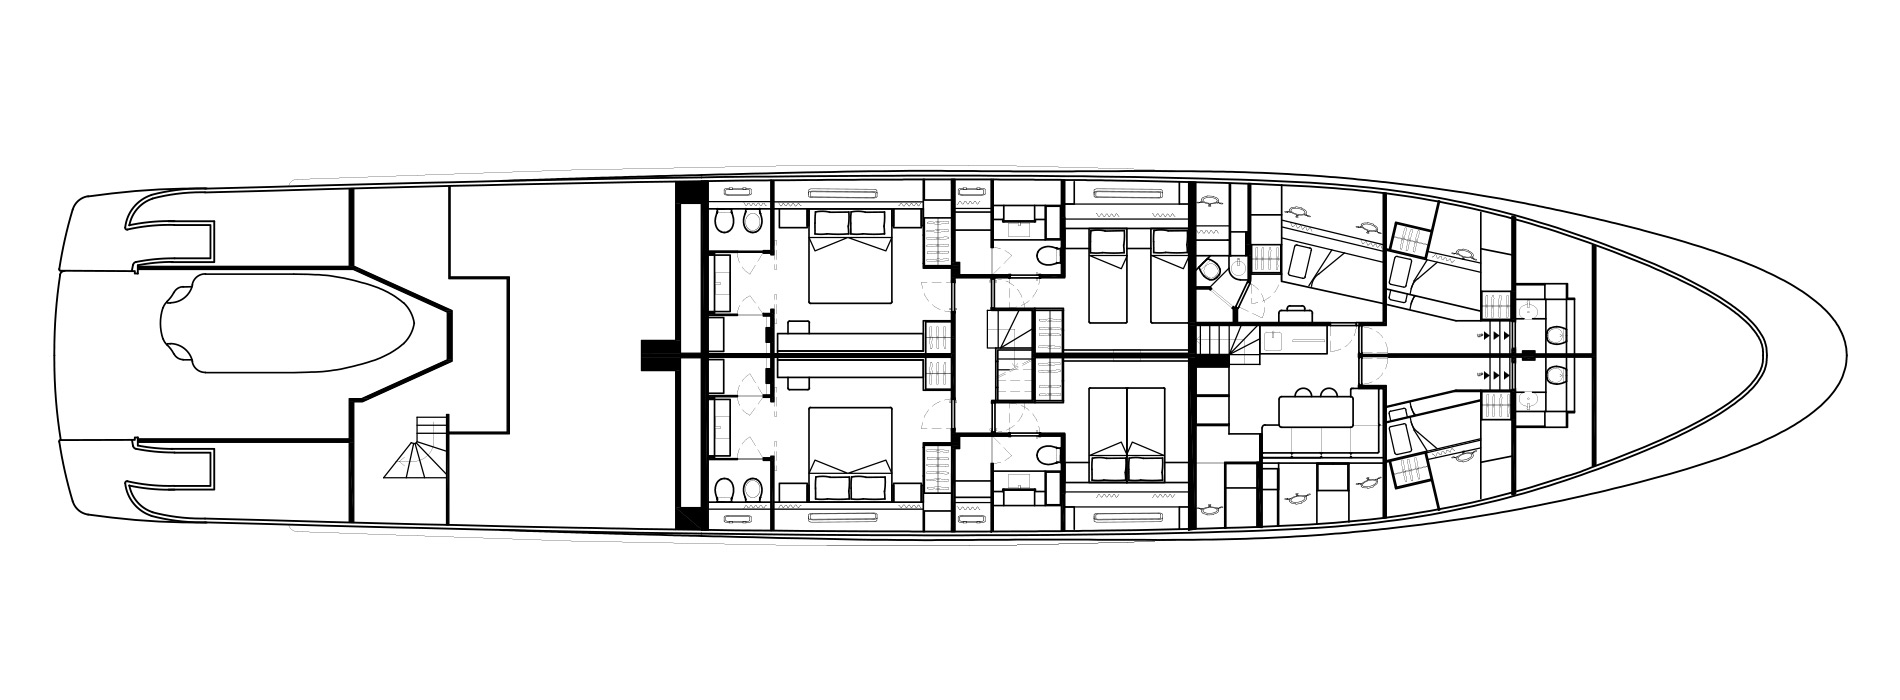 Sanlorenzo Yachts SD126 Lower Deck Version A bis